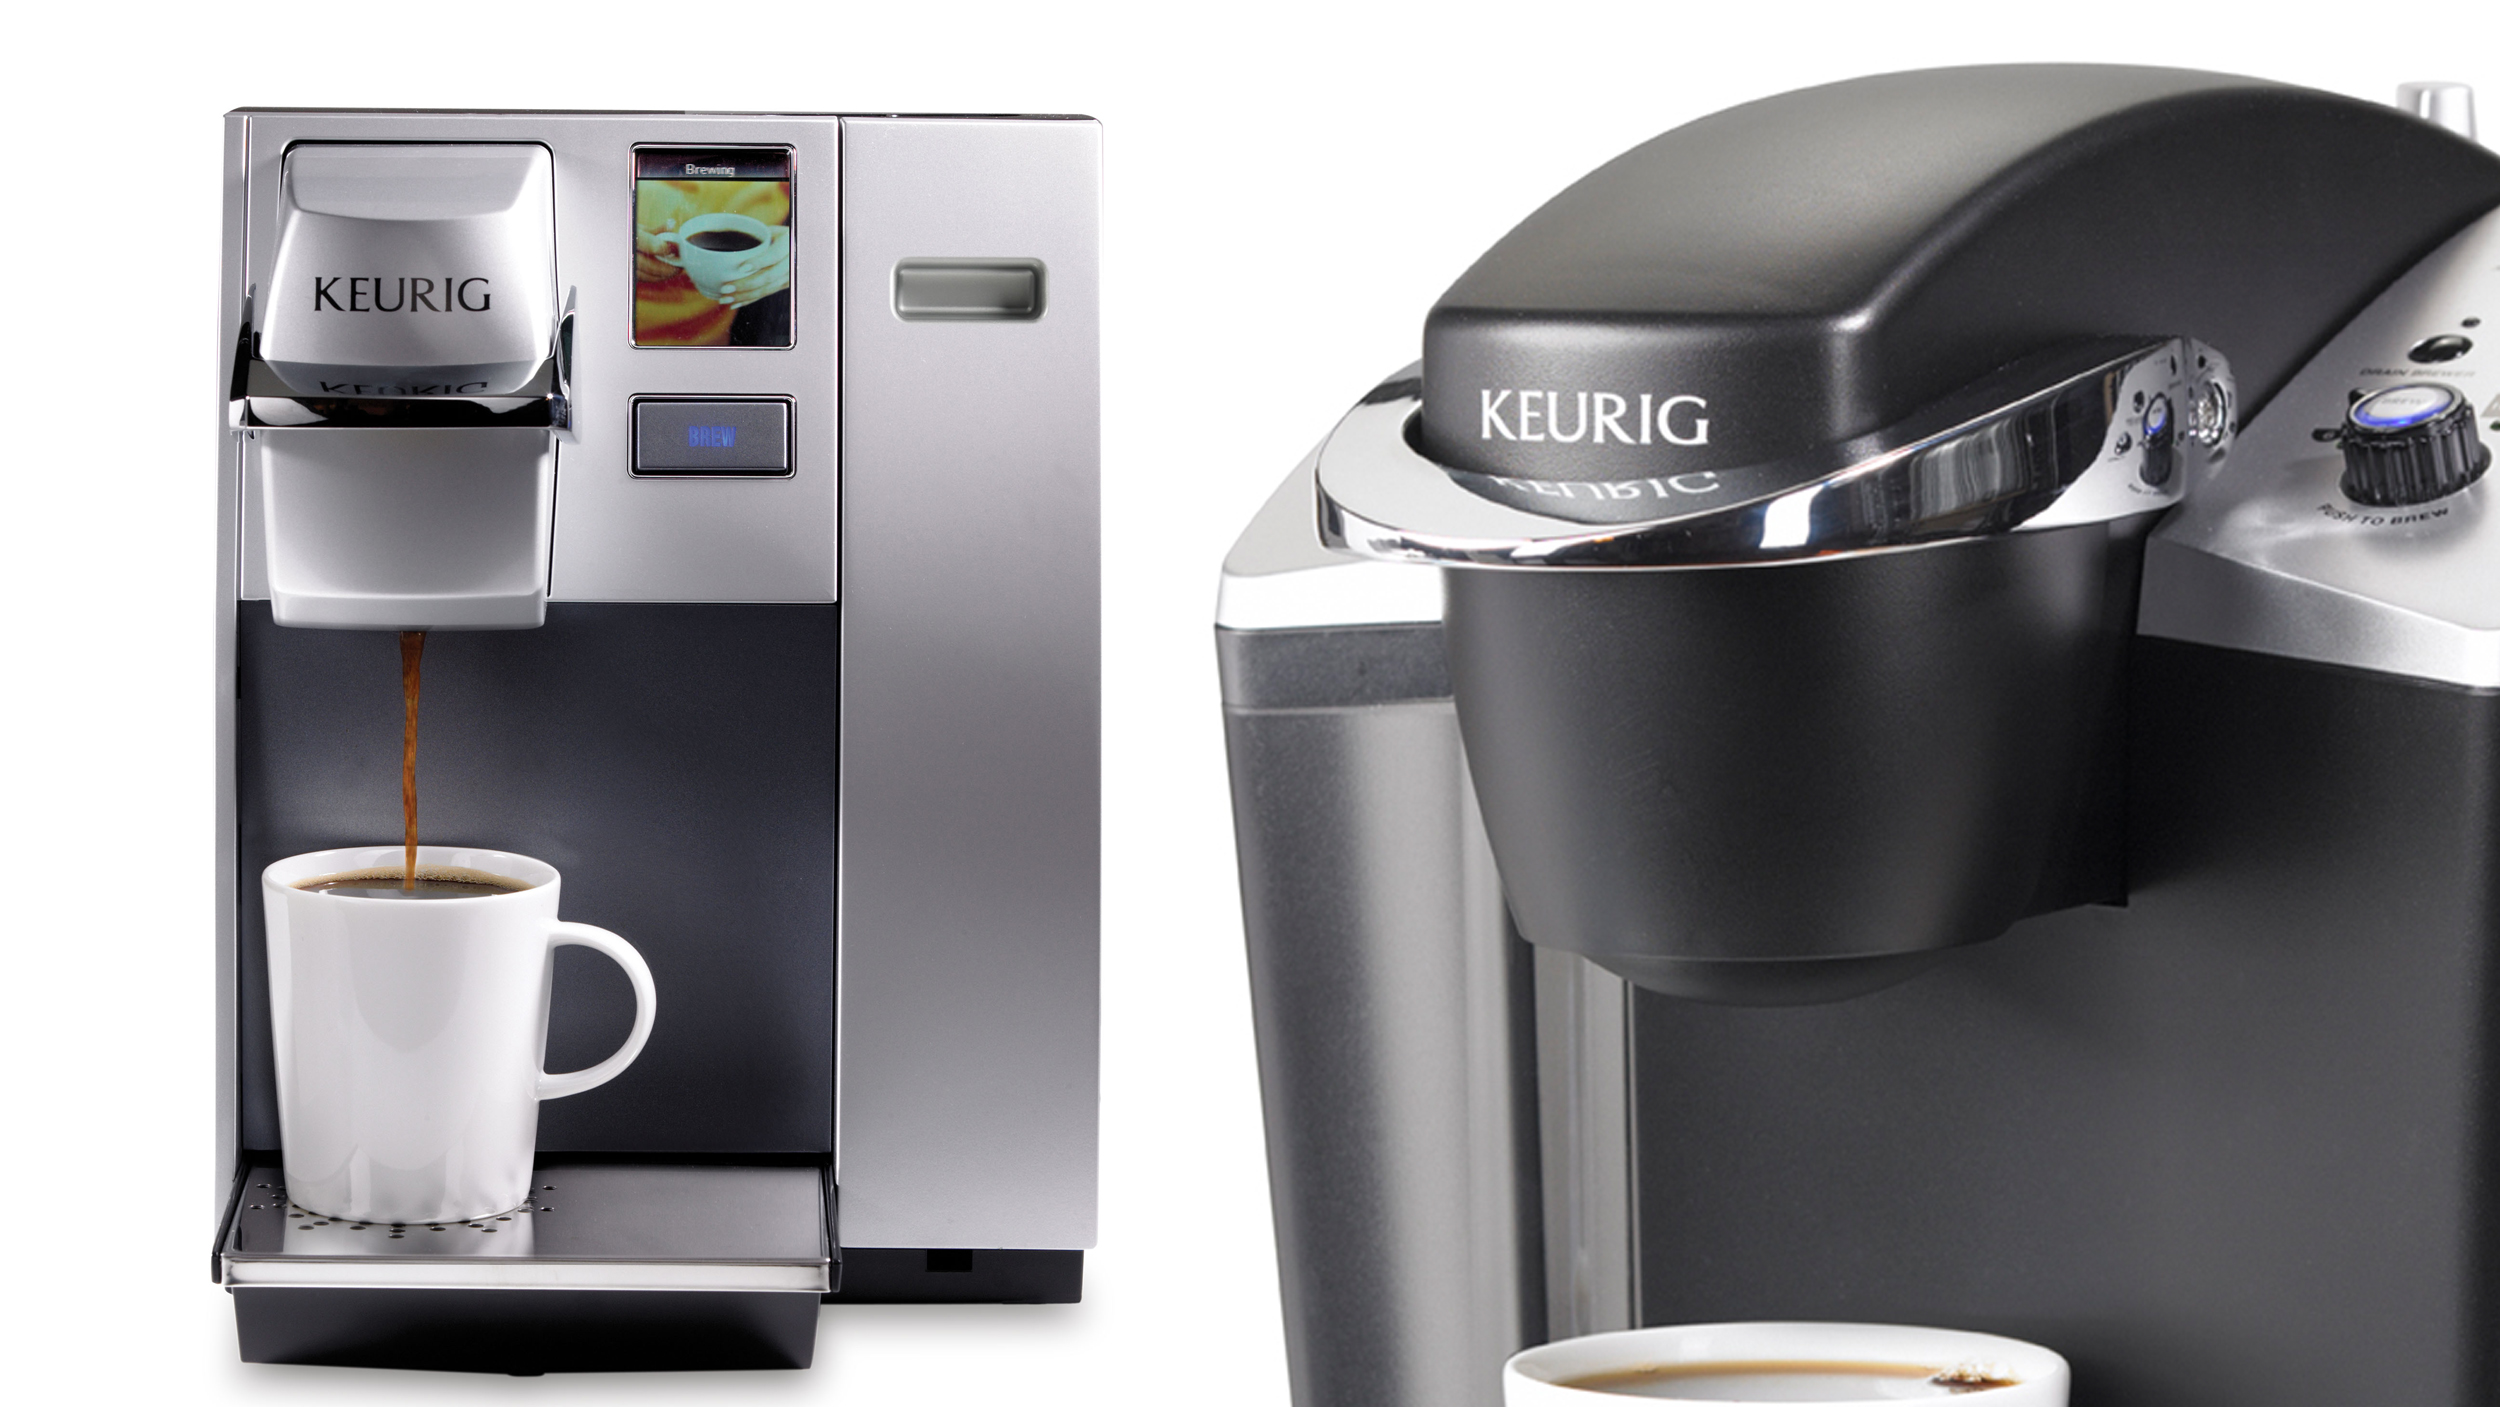 reset keurig machine